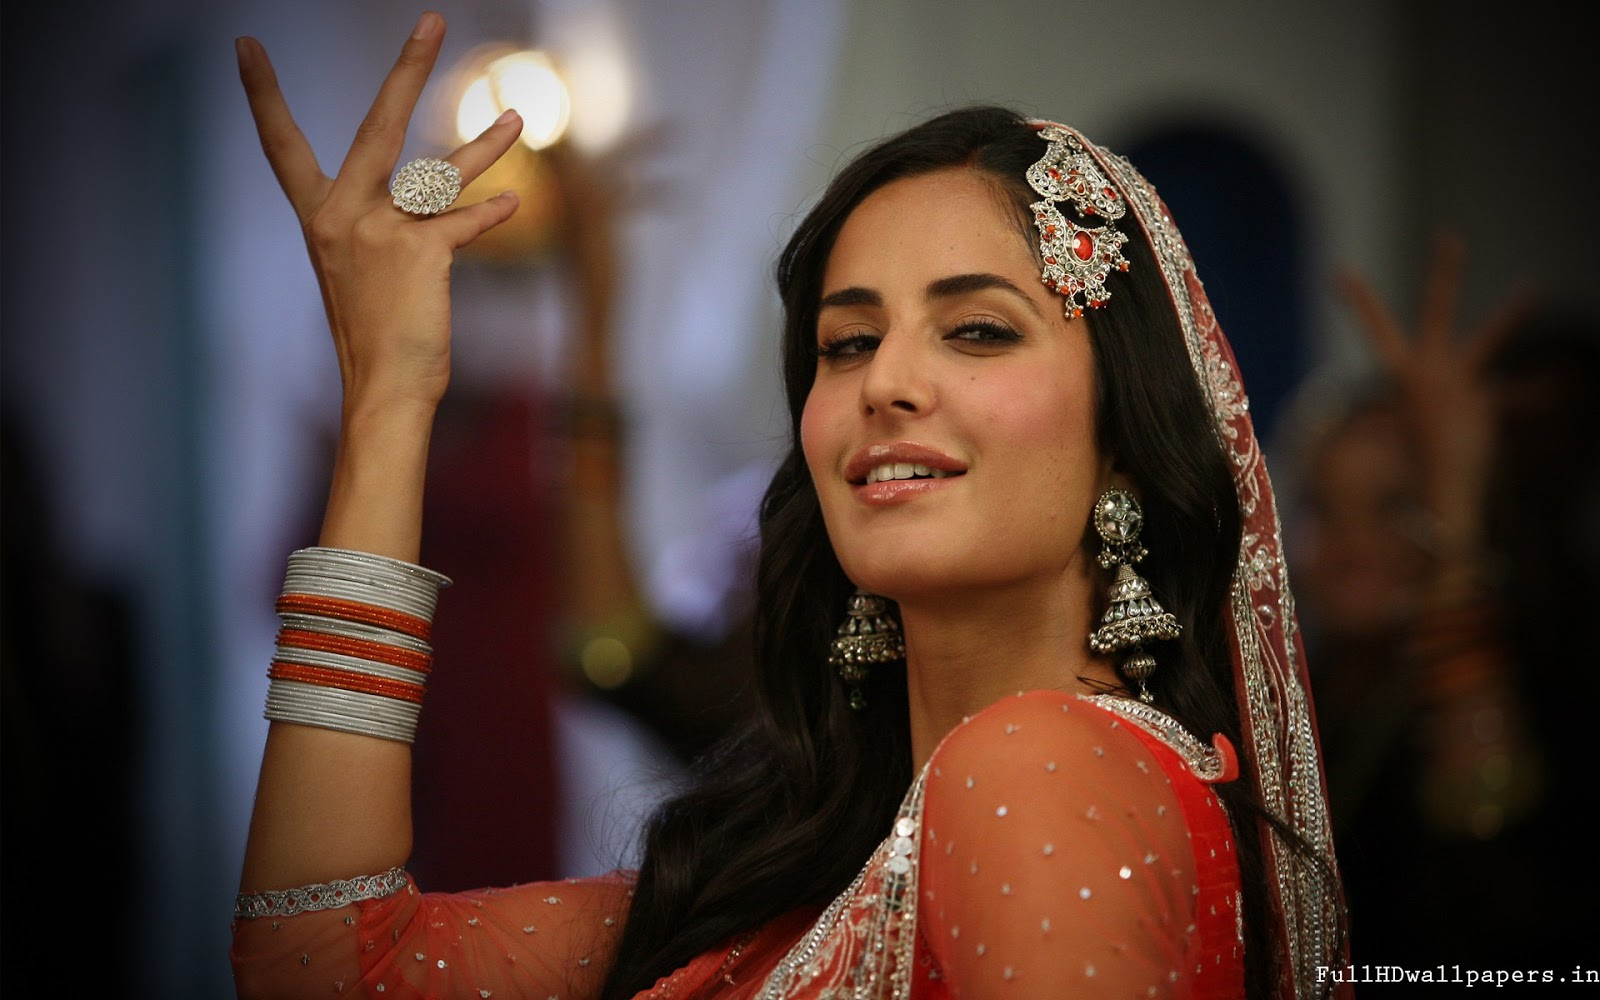 Katrina Kaif Wallpapers 2013 Images & Pictures - Becuo